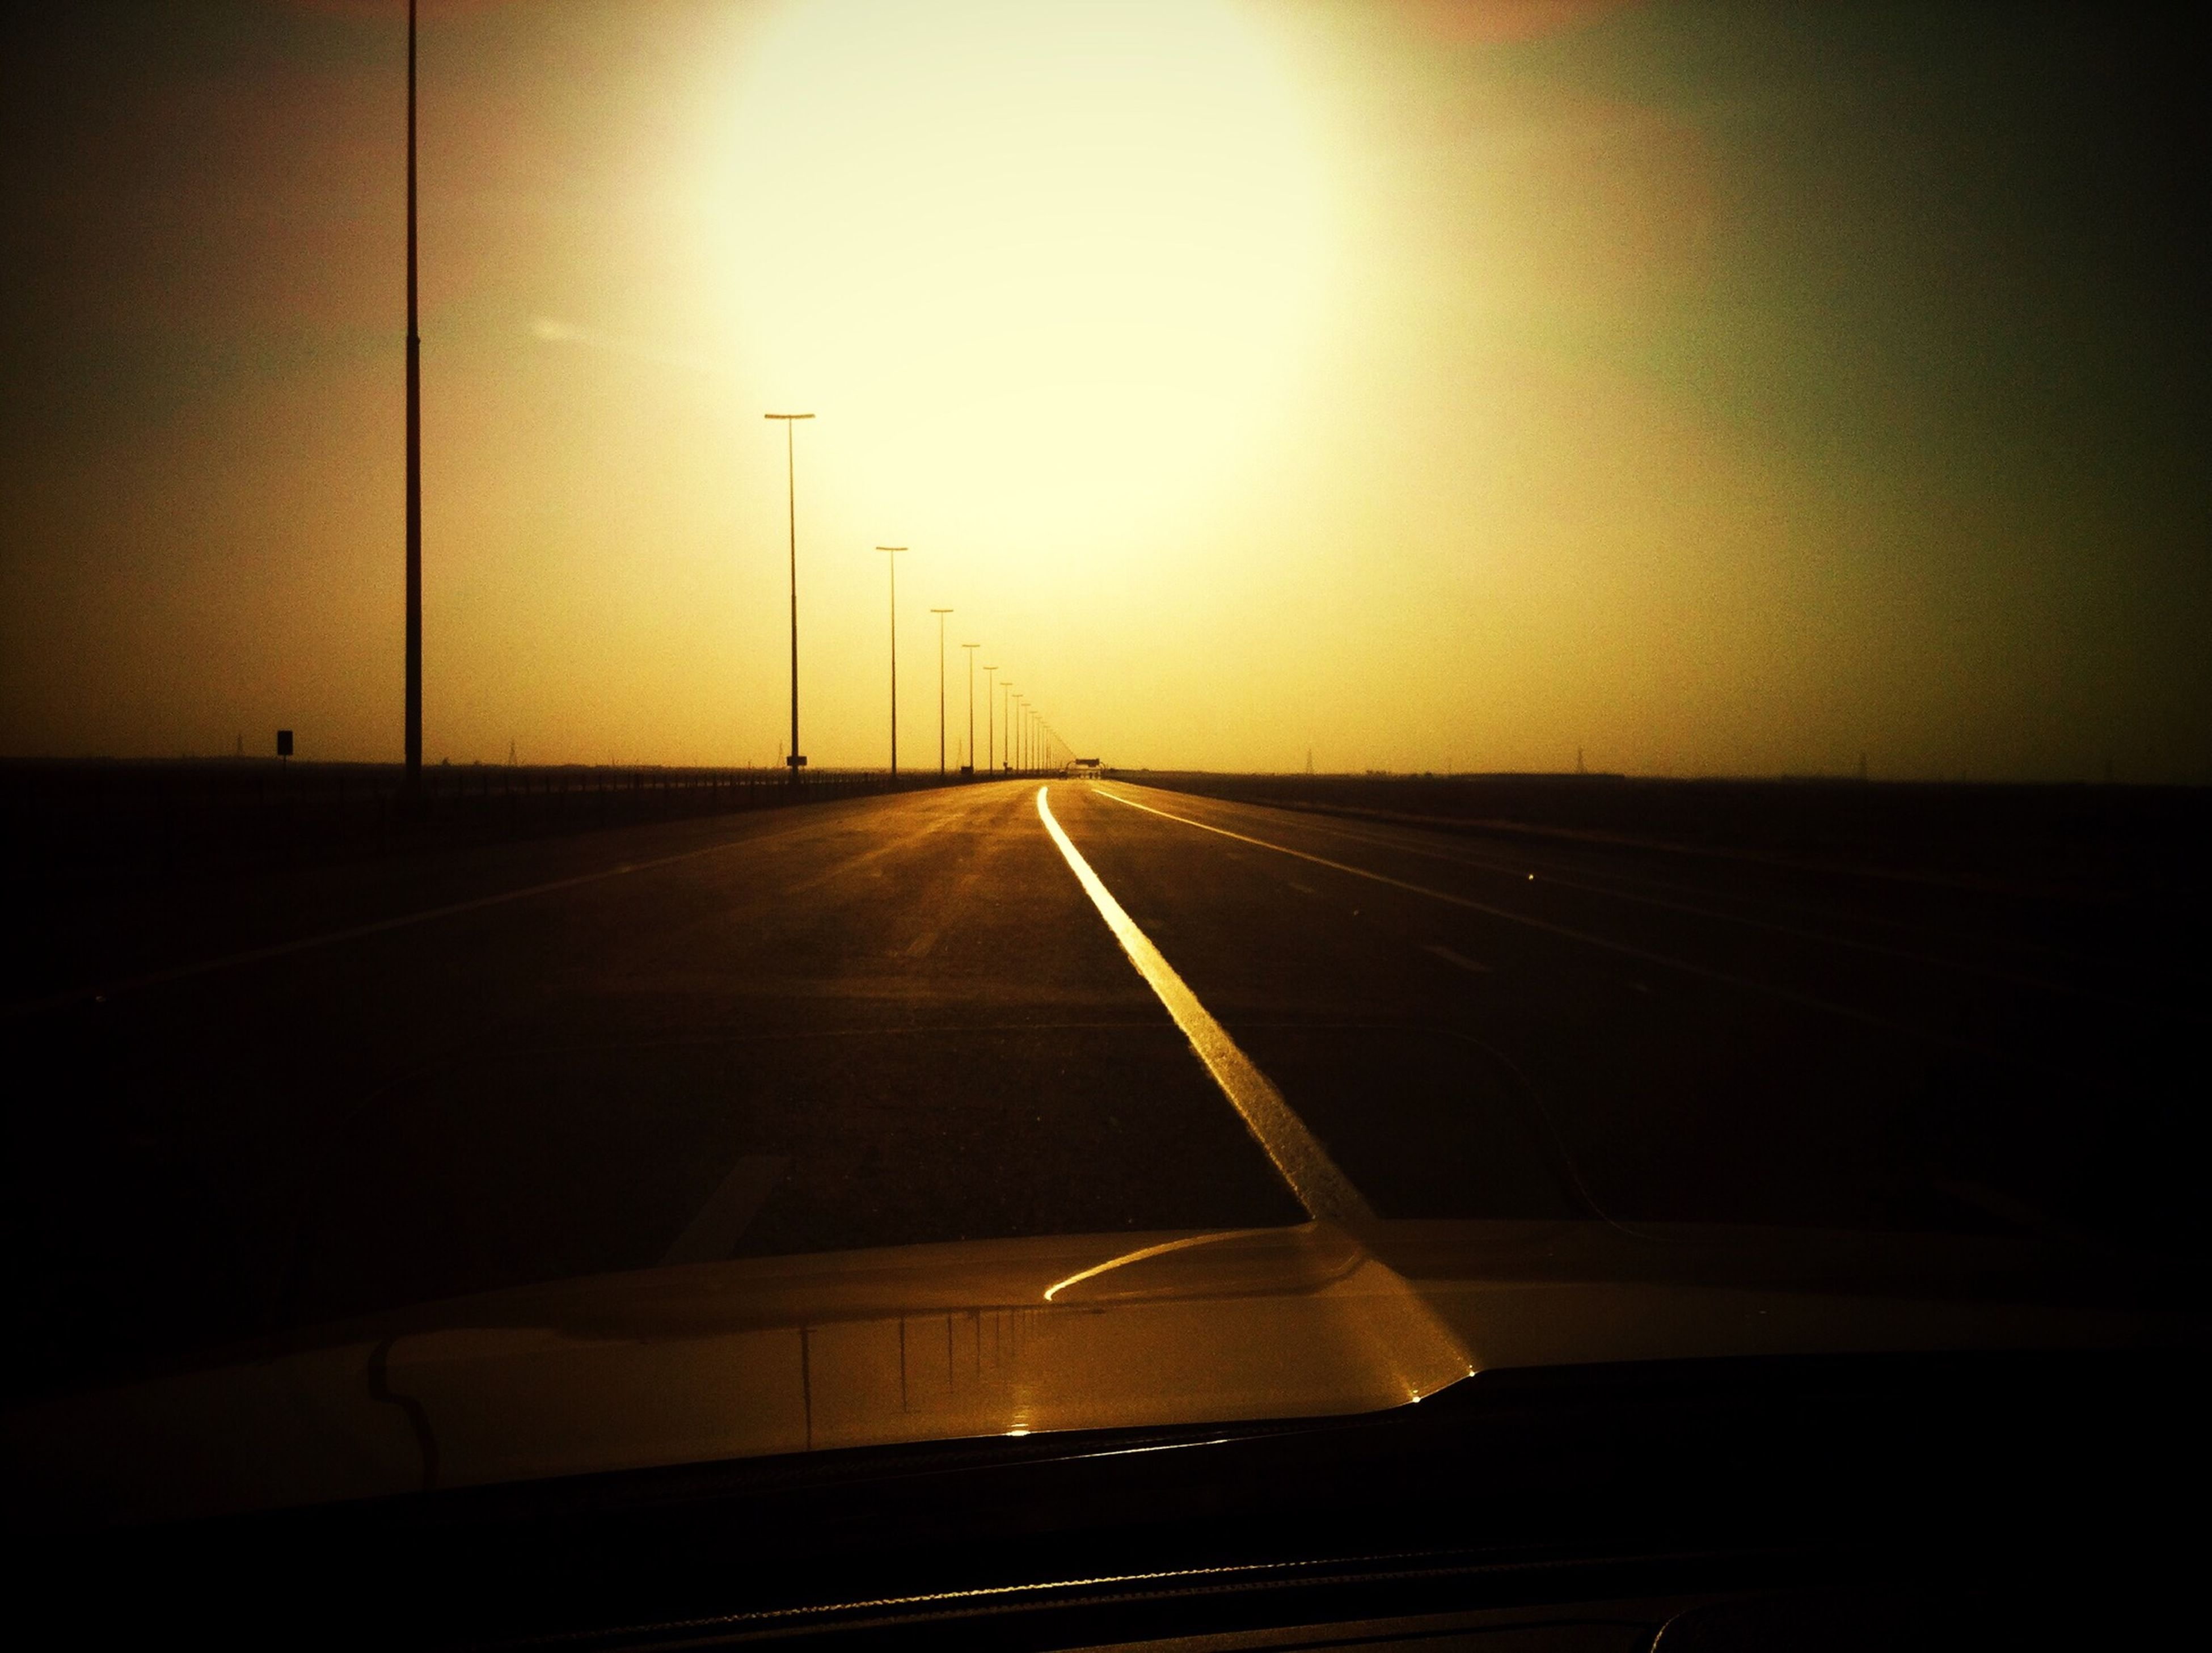 transportation, the way forward, diminishing perspective, vanishing point, road, road marking, sunset, sky, mode of transport, empty, long, car, street light, no people, travel, empty road, highway, outdoors, on the move, landscape